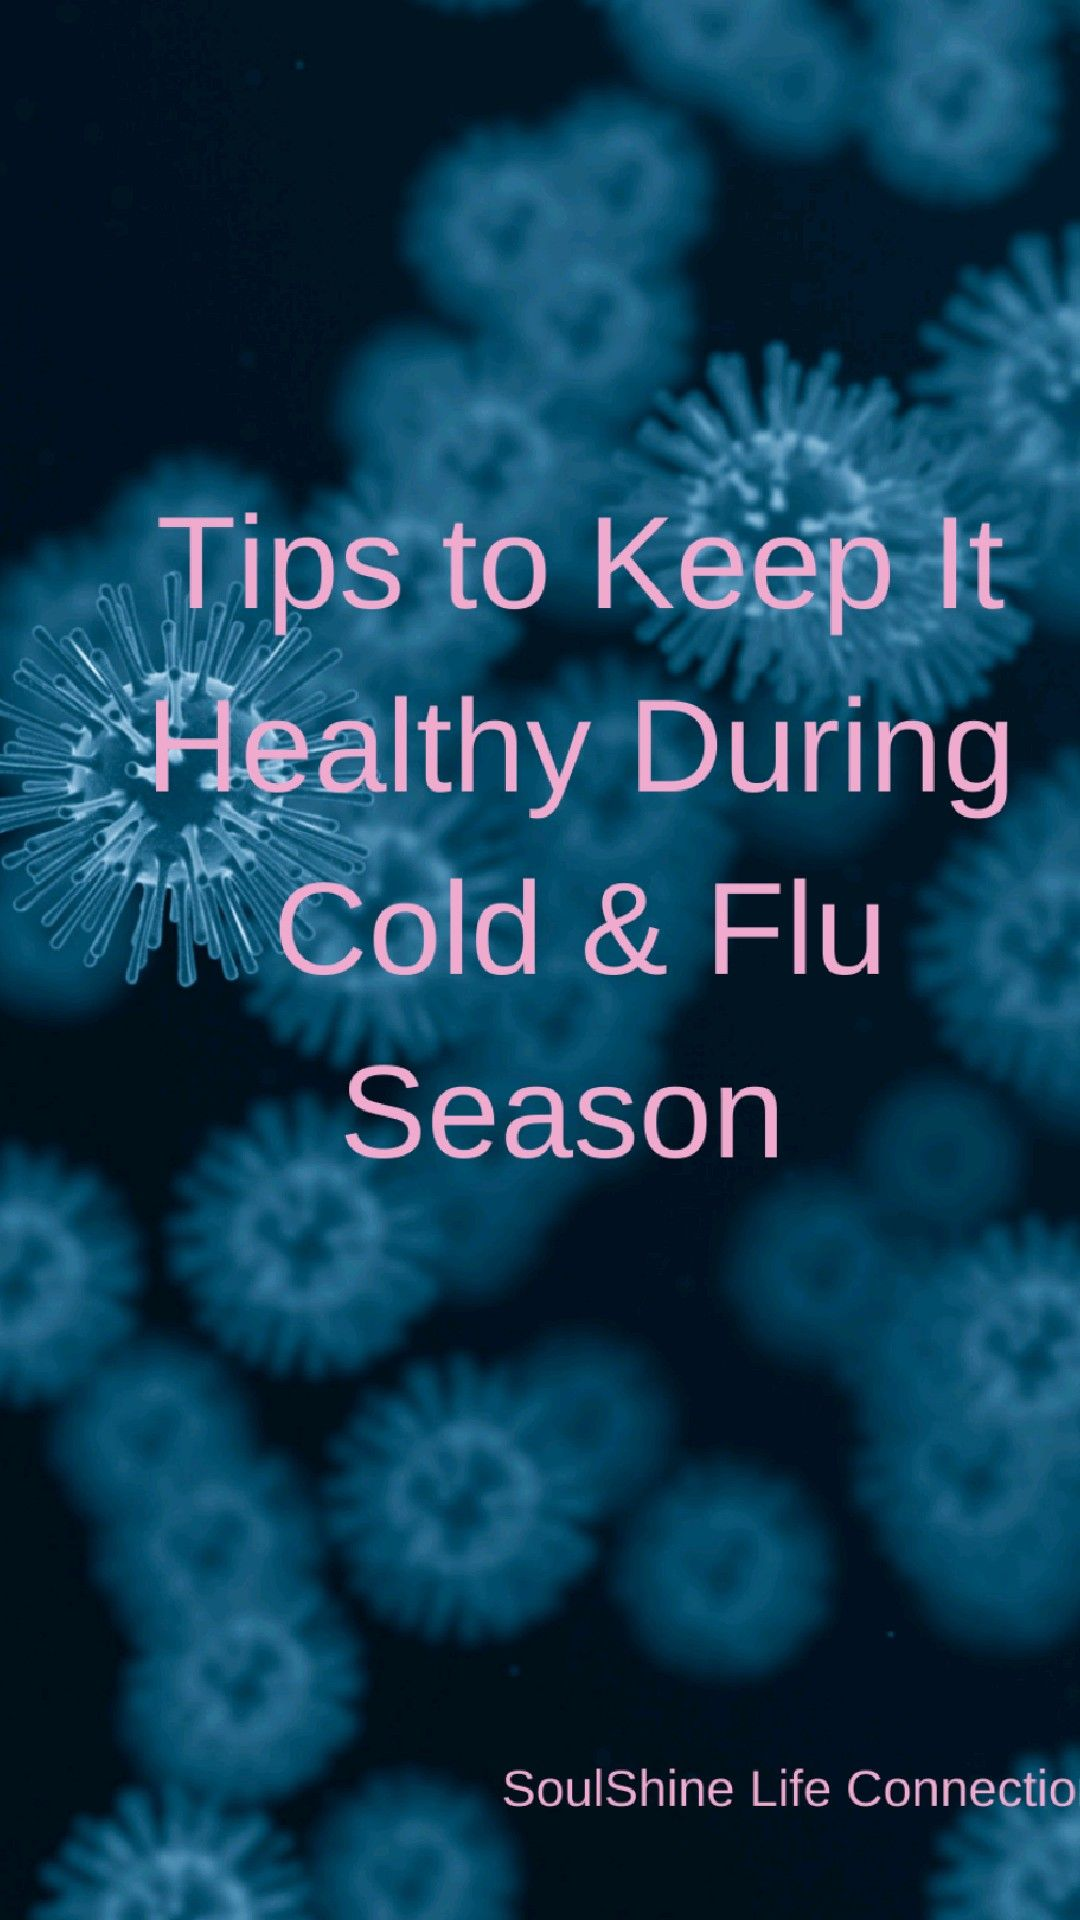 Tips to Keep it Healthy During Cold & Flu Season!